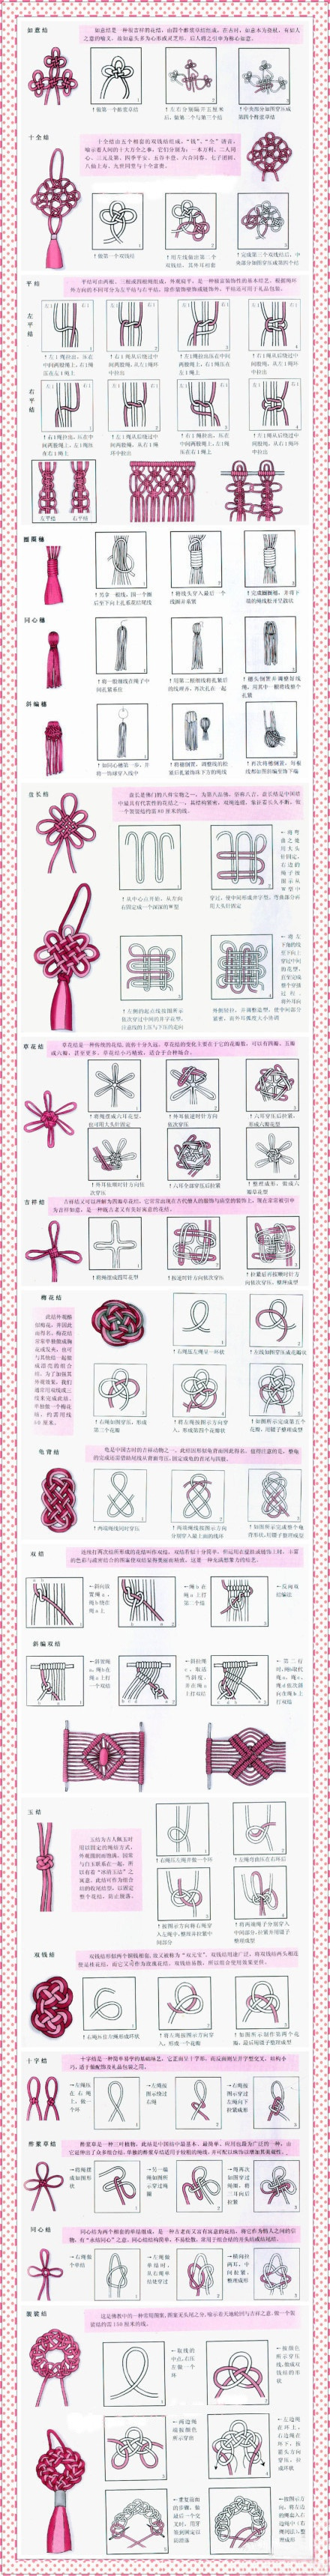 Chinese knot step-by-step  pattern tutorial DIY